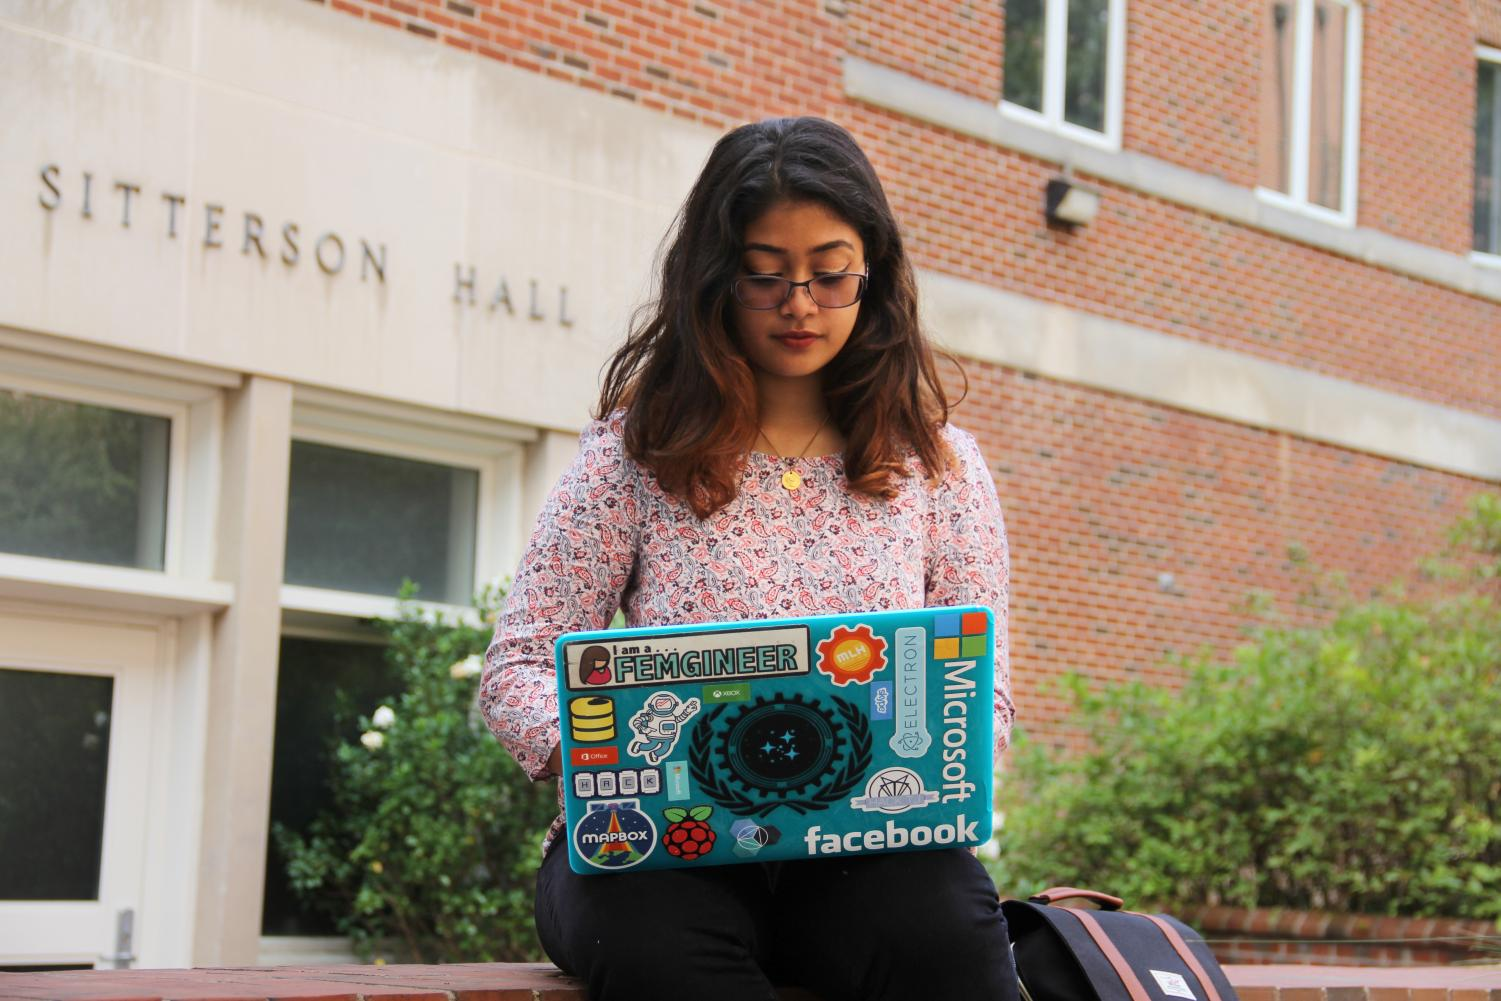 Jefferson Class of 2016 graduate, Sweta Karlekar, is working on her laptop outside of Sitterson Hall on the UNC Chapel Hill campus.